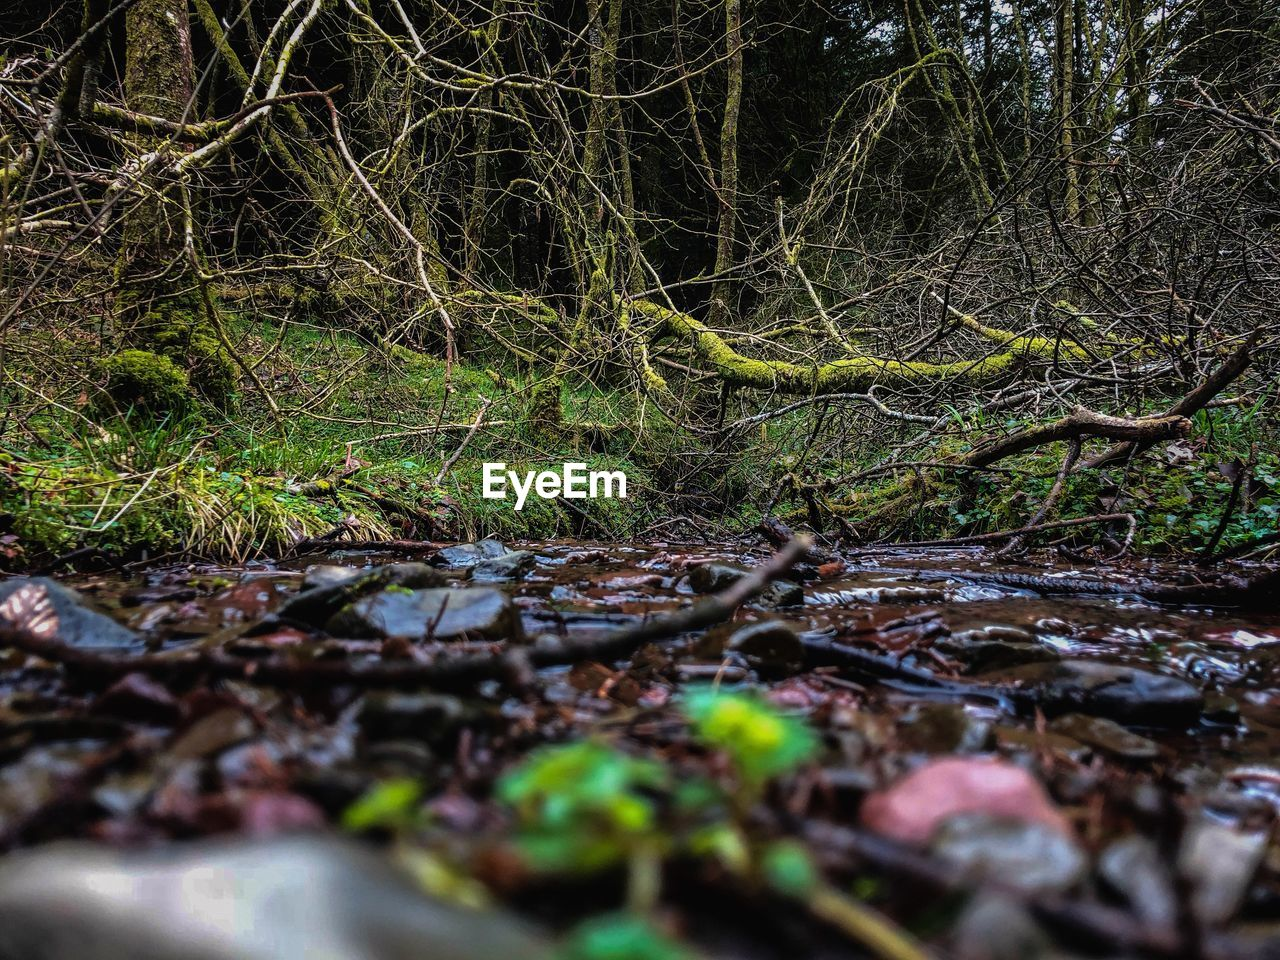 tree, forest, plant, land, tranquility, nature, no people, growth, selective focus, day, beauty in nature, woodland, tree trunk, root, branch, water, trunk, moss, falling, non-urban scene, outdoors, messy, surface level, swamp